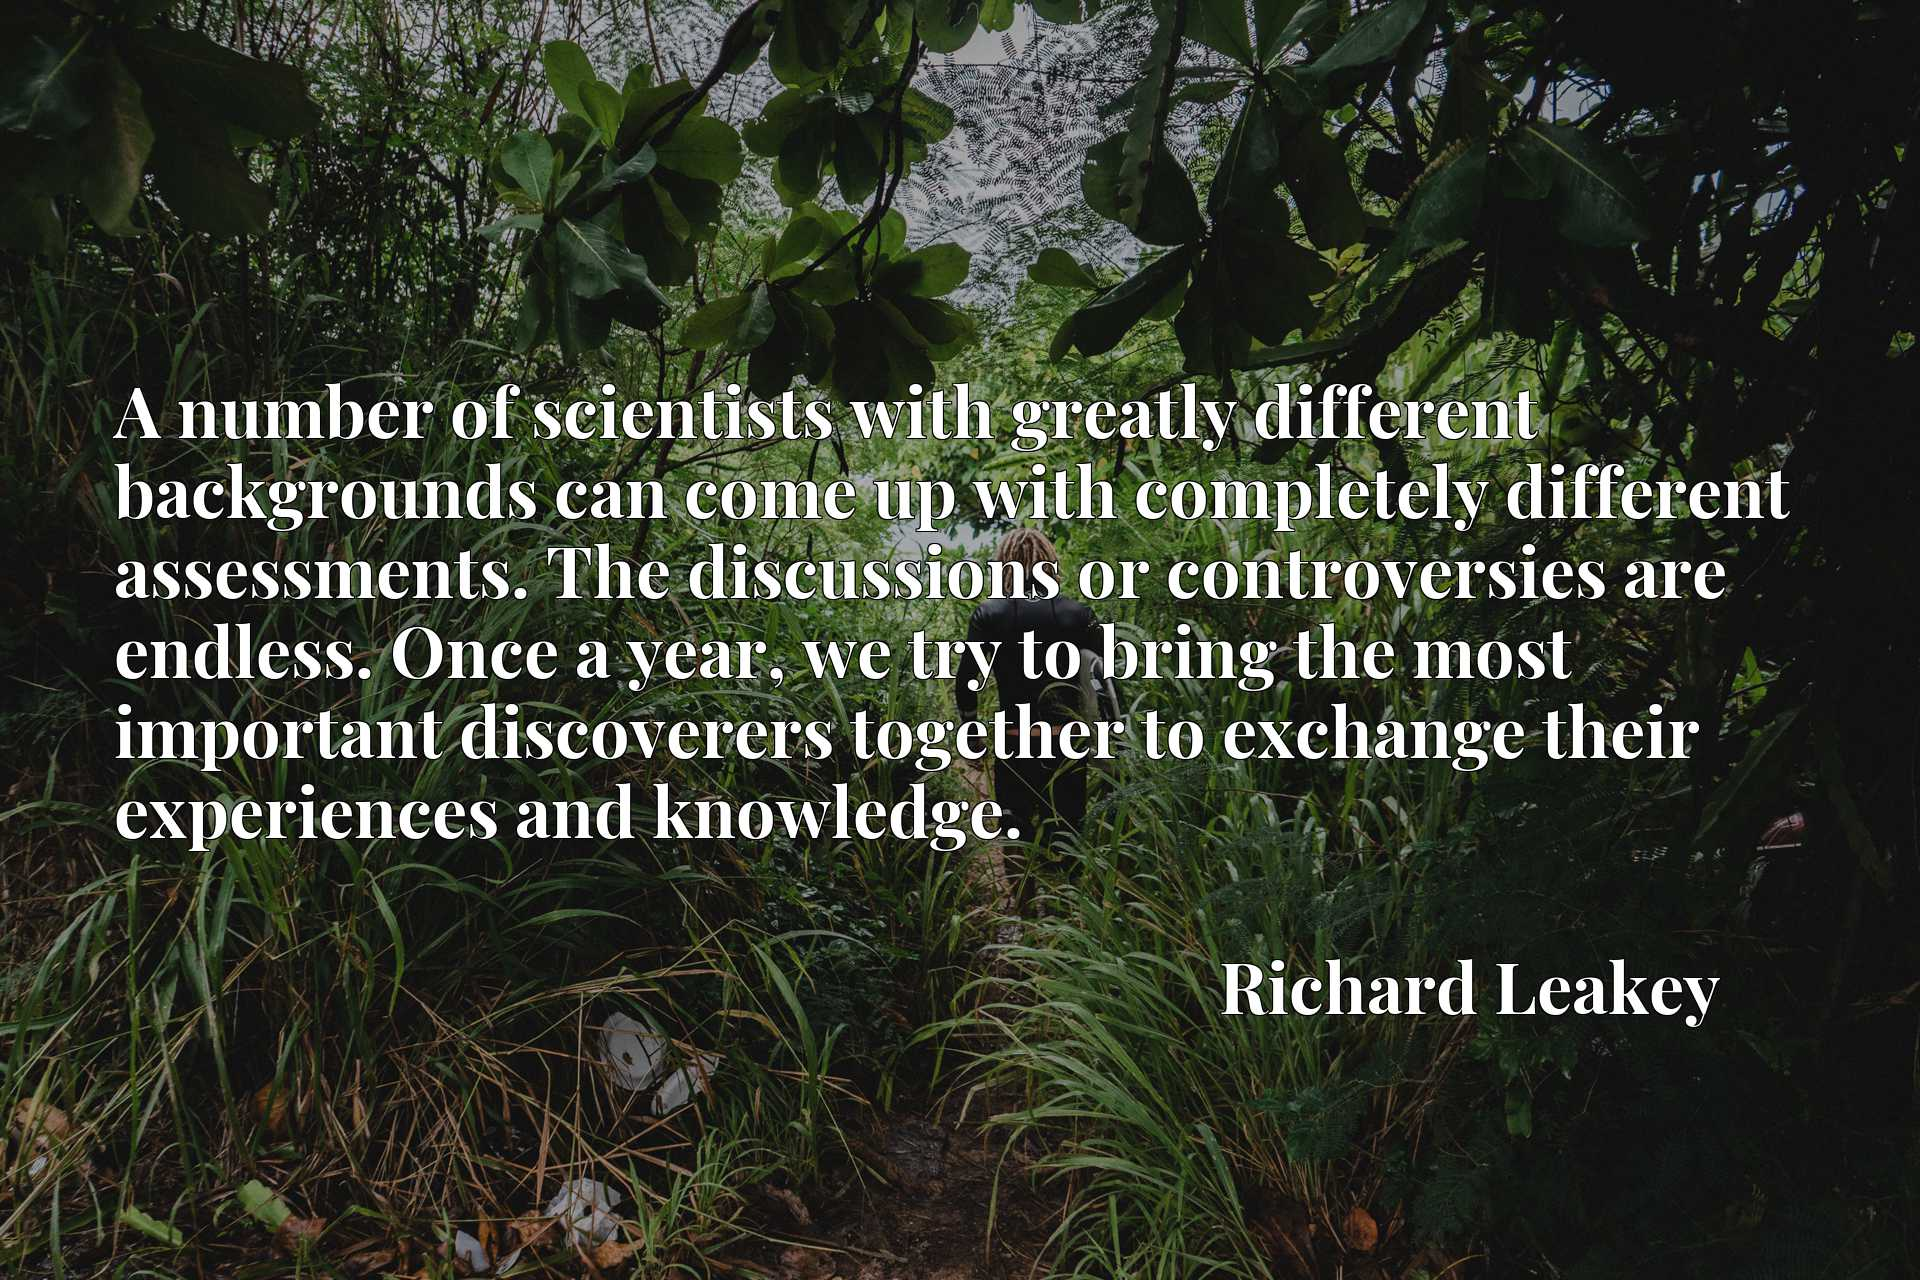 A number of scientists with greatly different backgrounds can come up with completely different assessments. The discussions or controversies are endless. Once a year, we try to bring the most important discoverers together to exchange their experiences and knowledge.